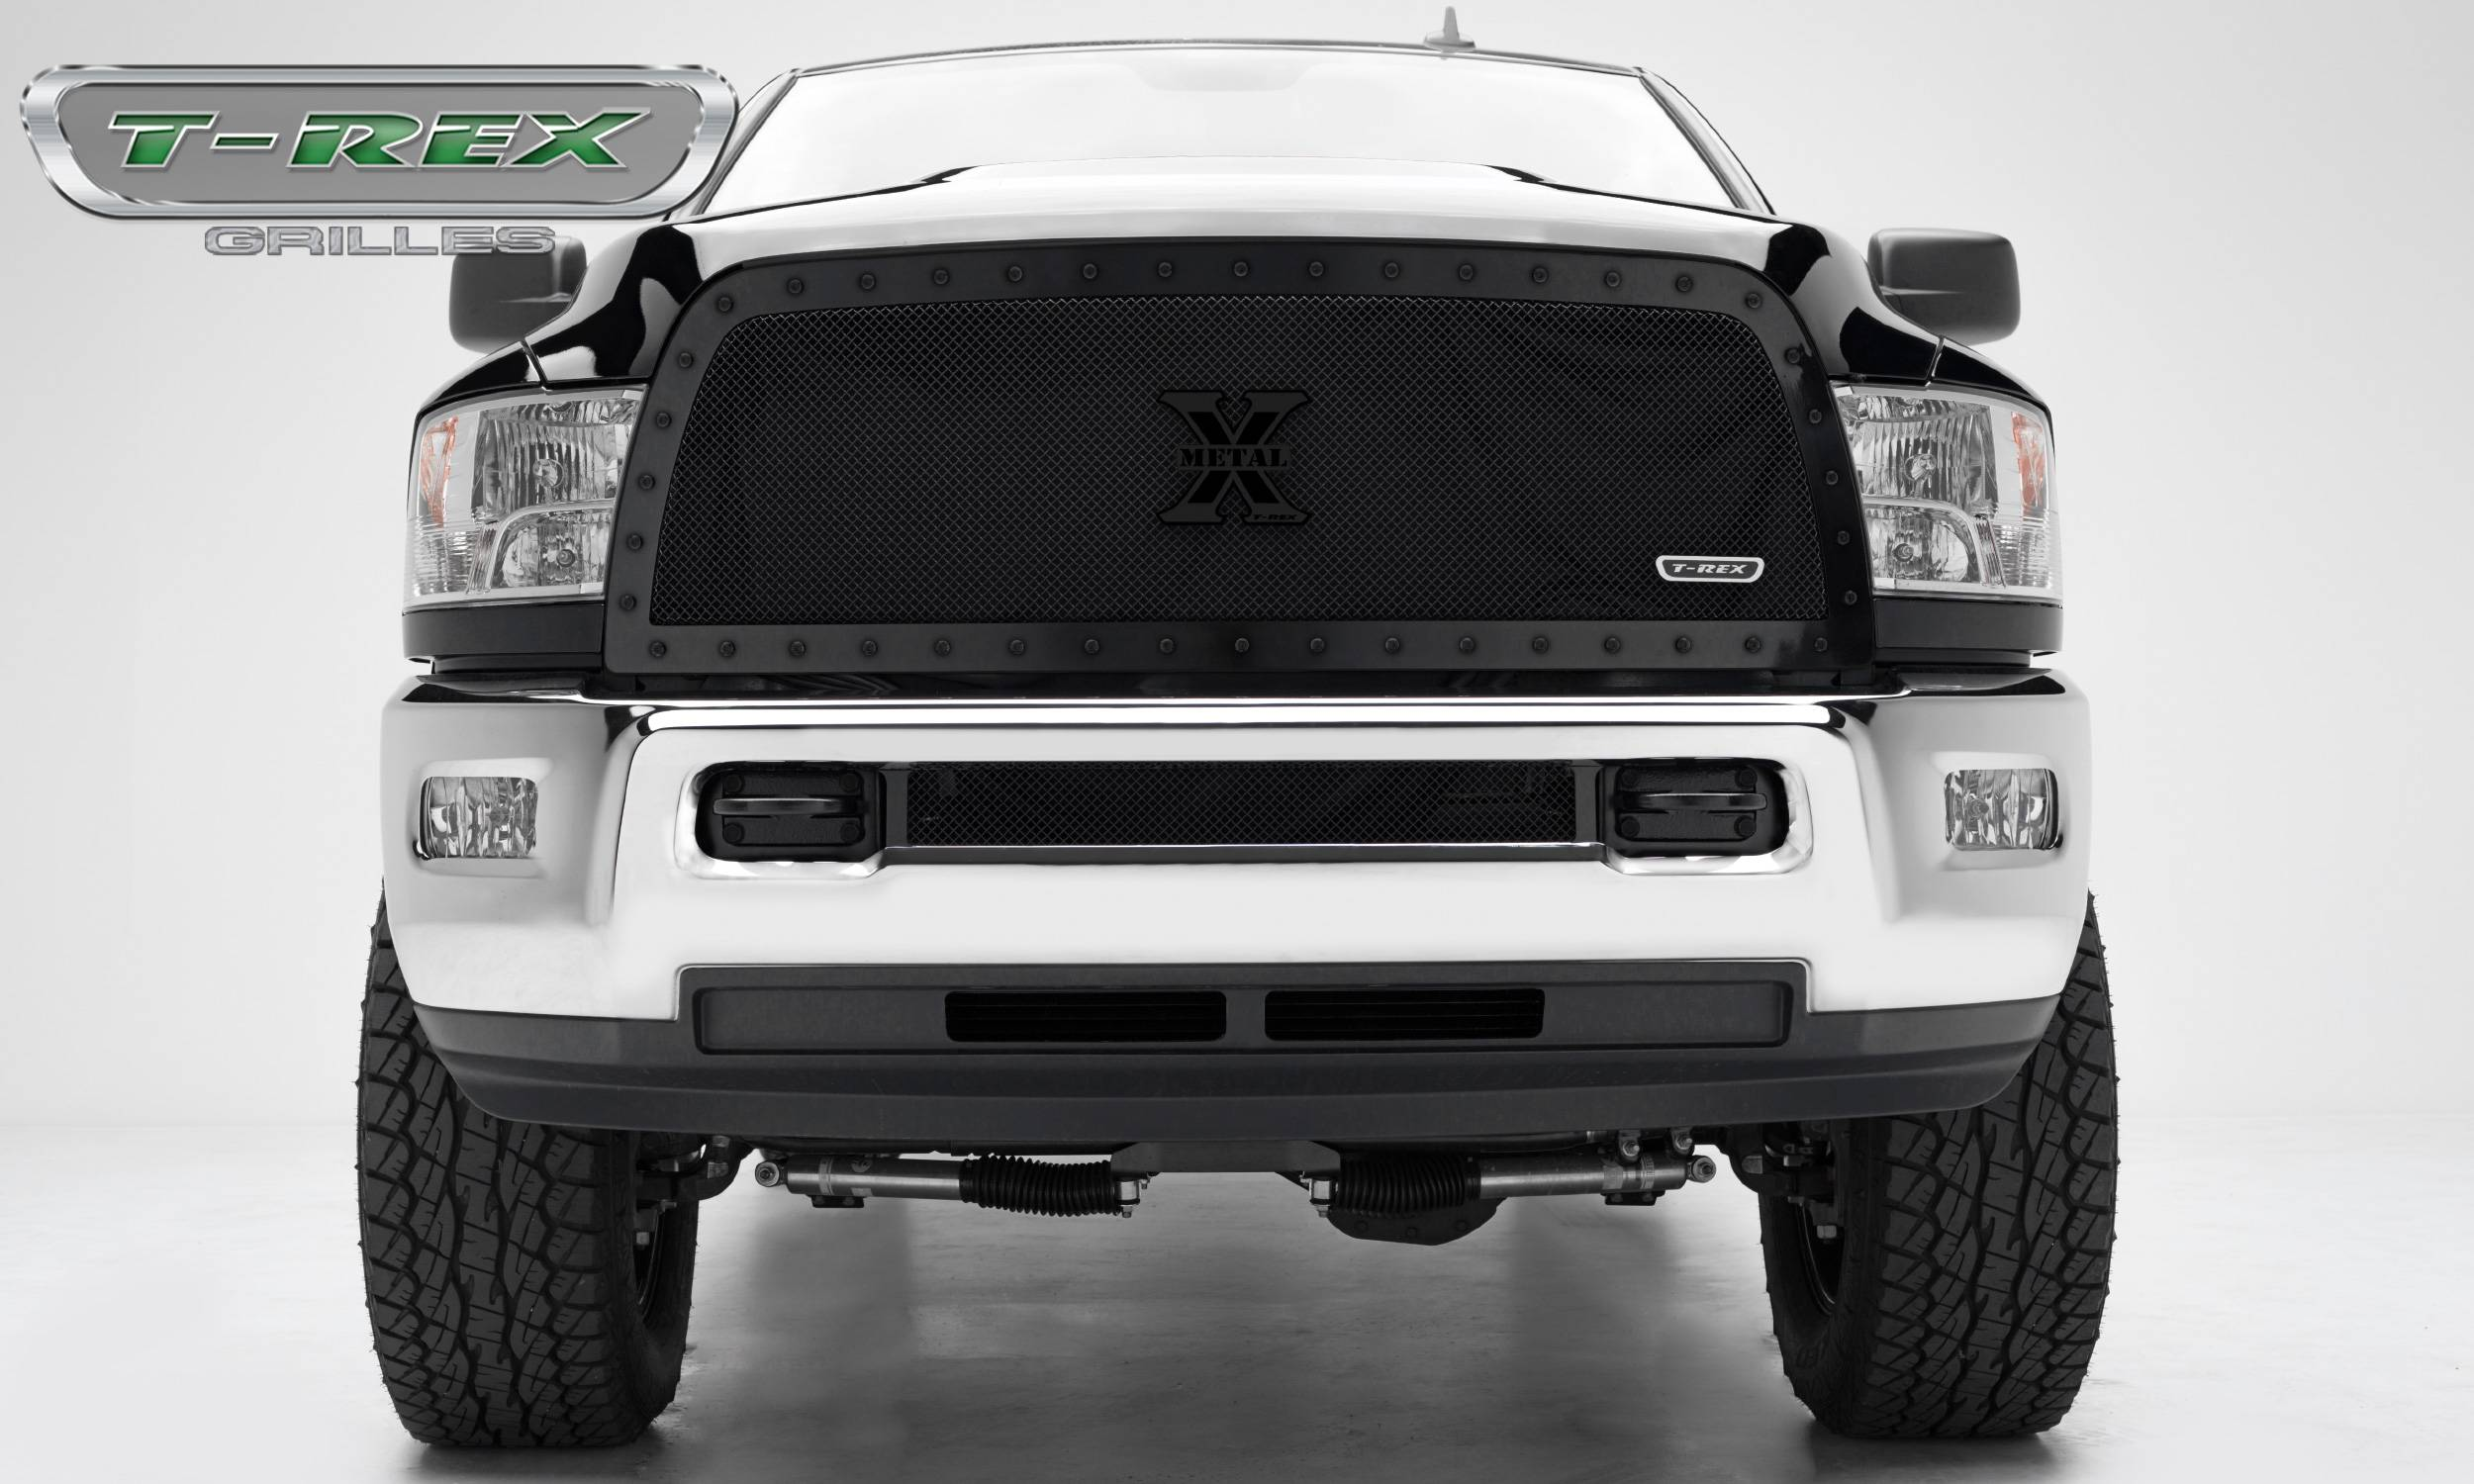 T-REX Dodge Ram PU 2500 / 3500 X-METAL Series - Studded Main Grille - Custom 1 Pc Full Opening  - ALL Black - Pt # 6714521-BR